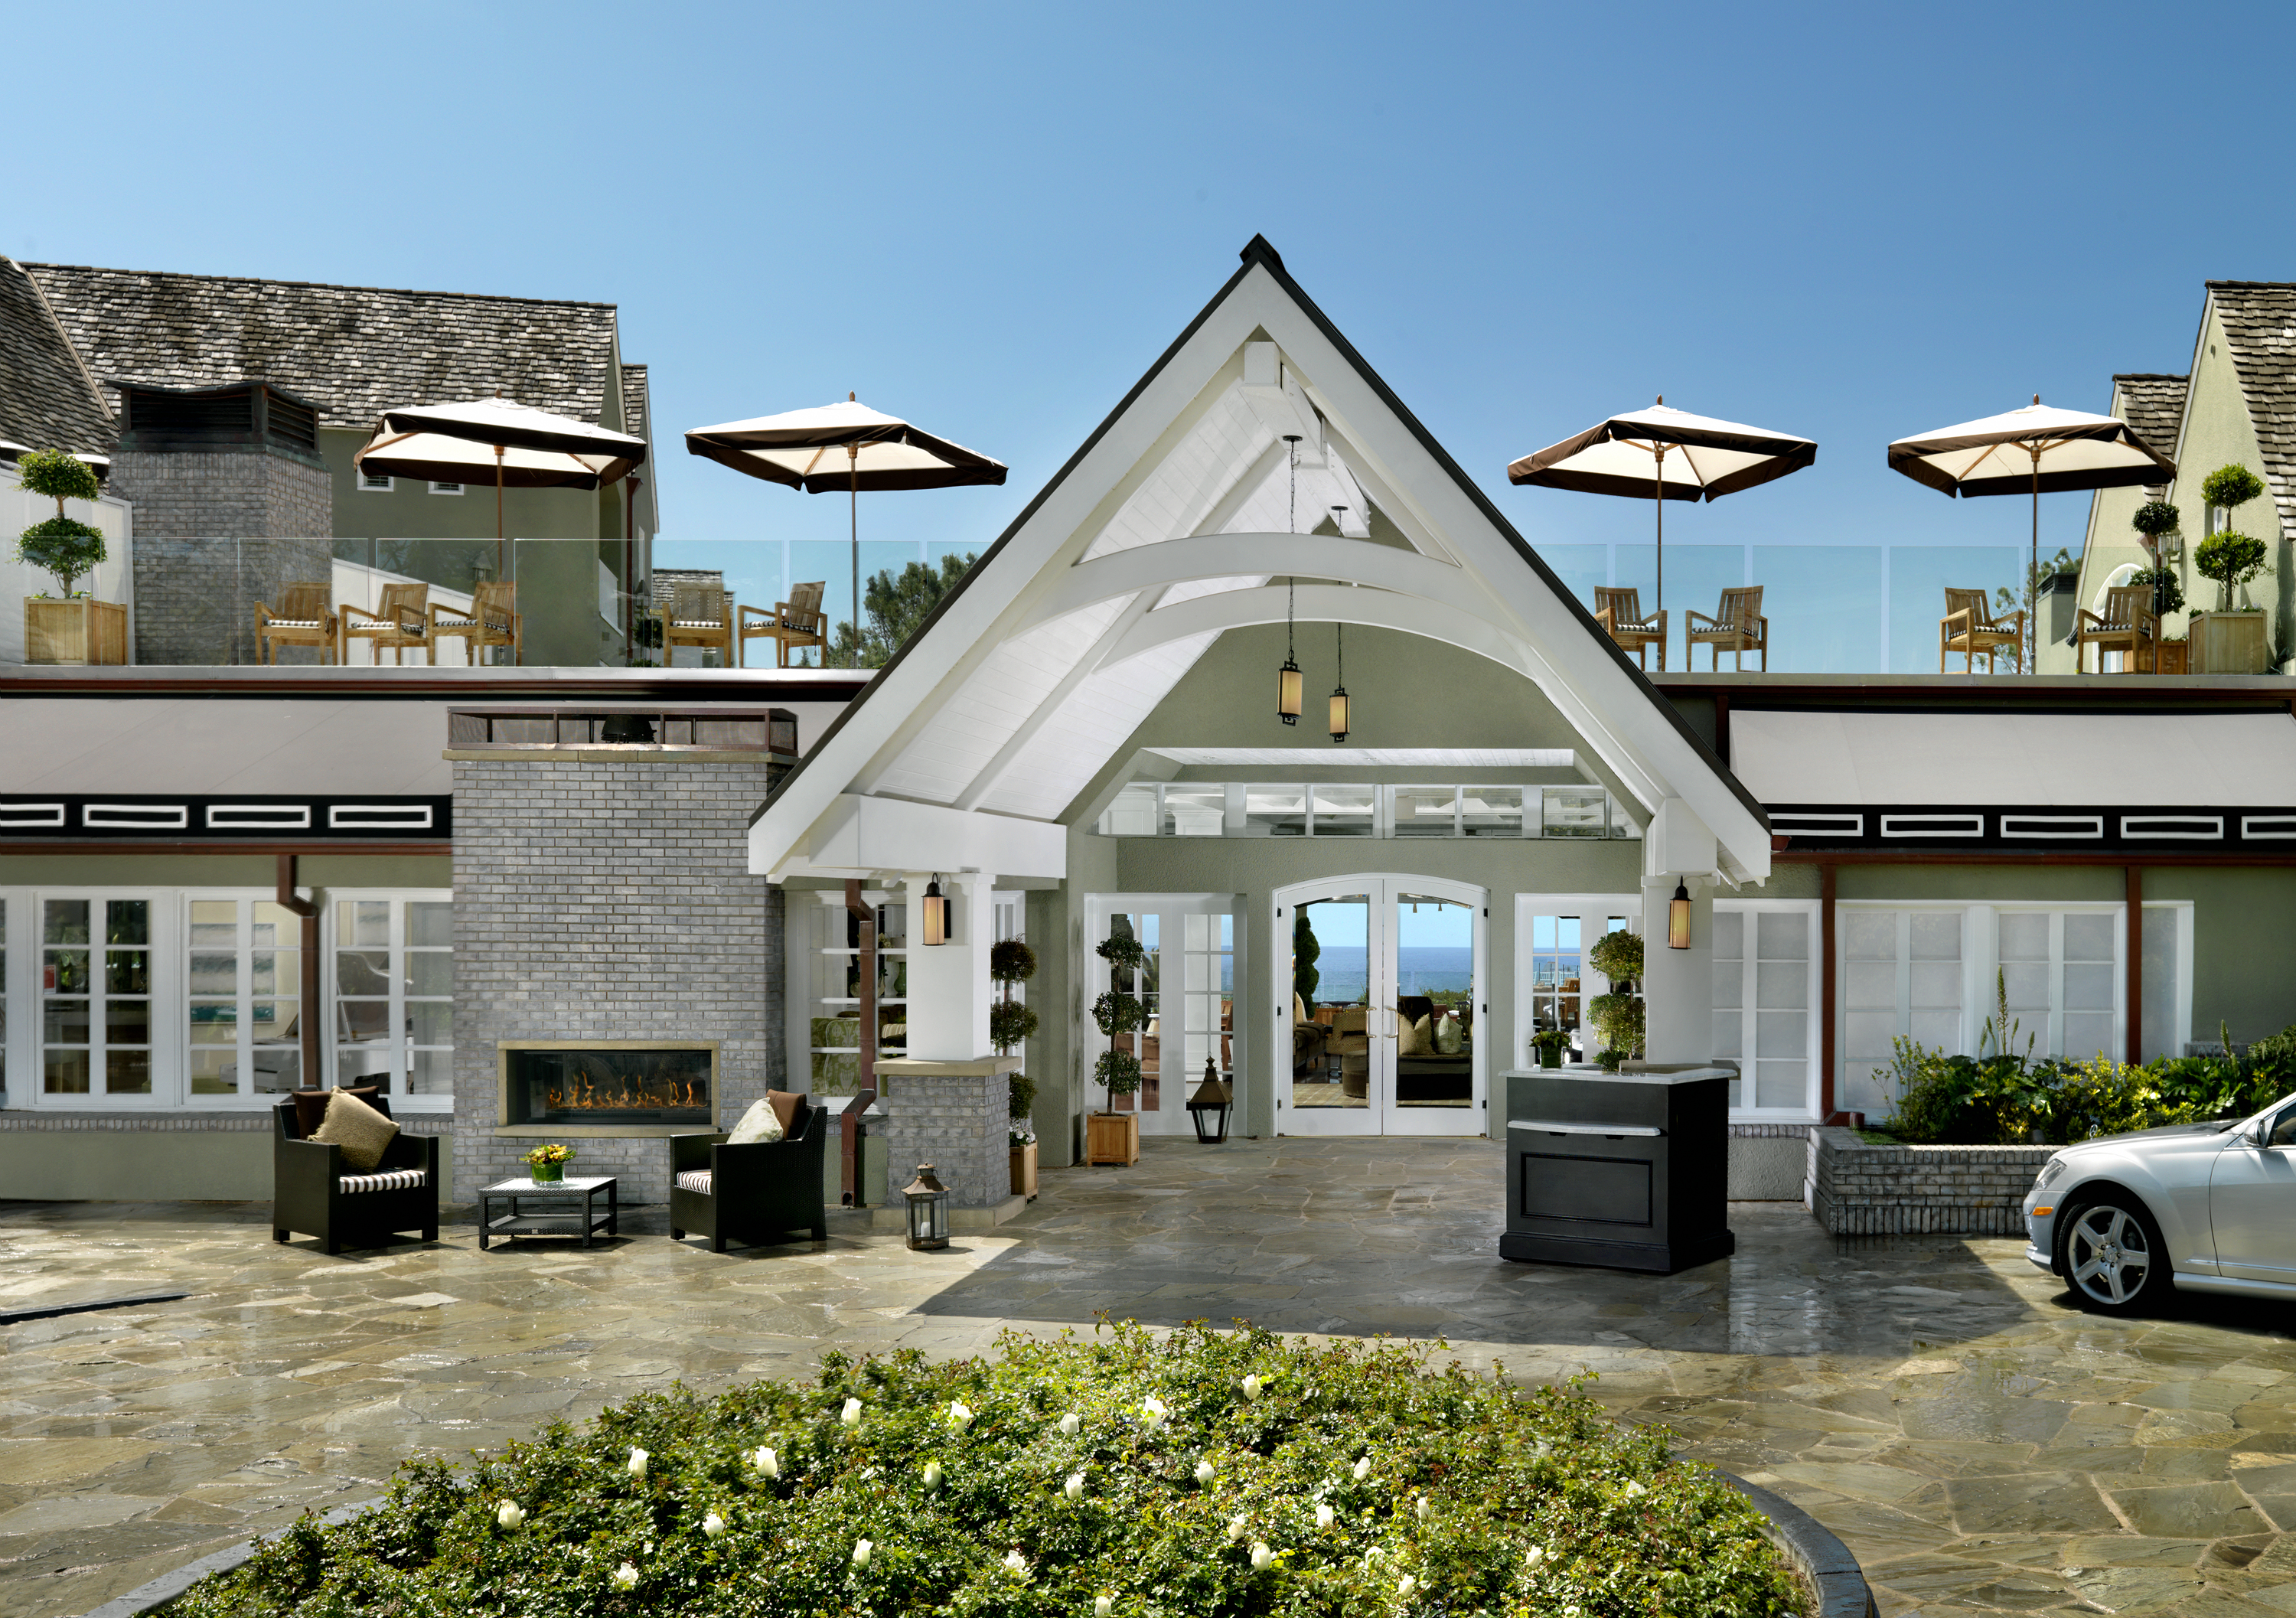 The Ultimate In Coastal Elegance L Auberge Del Mar Celebrates Its 25th Anniversary This